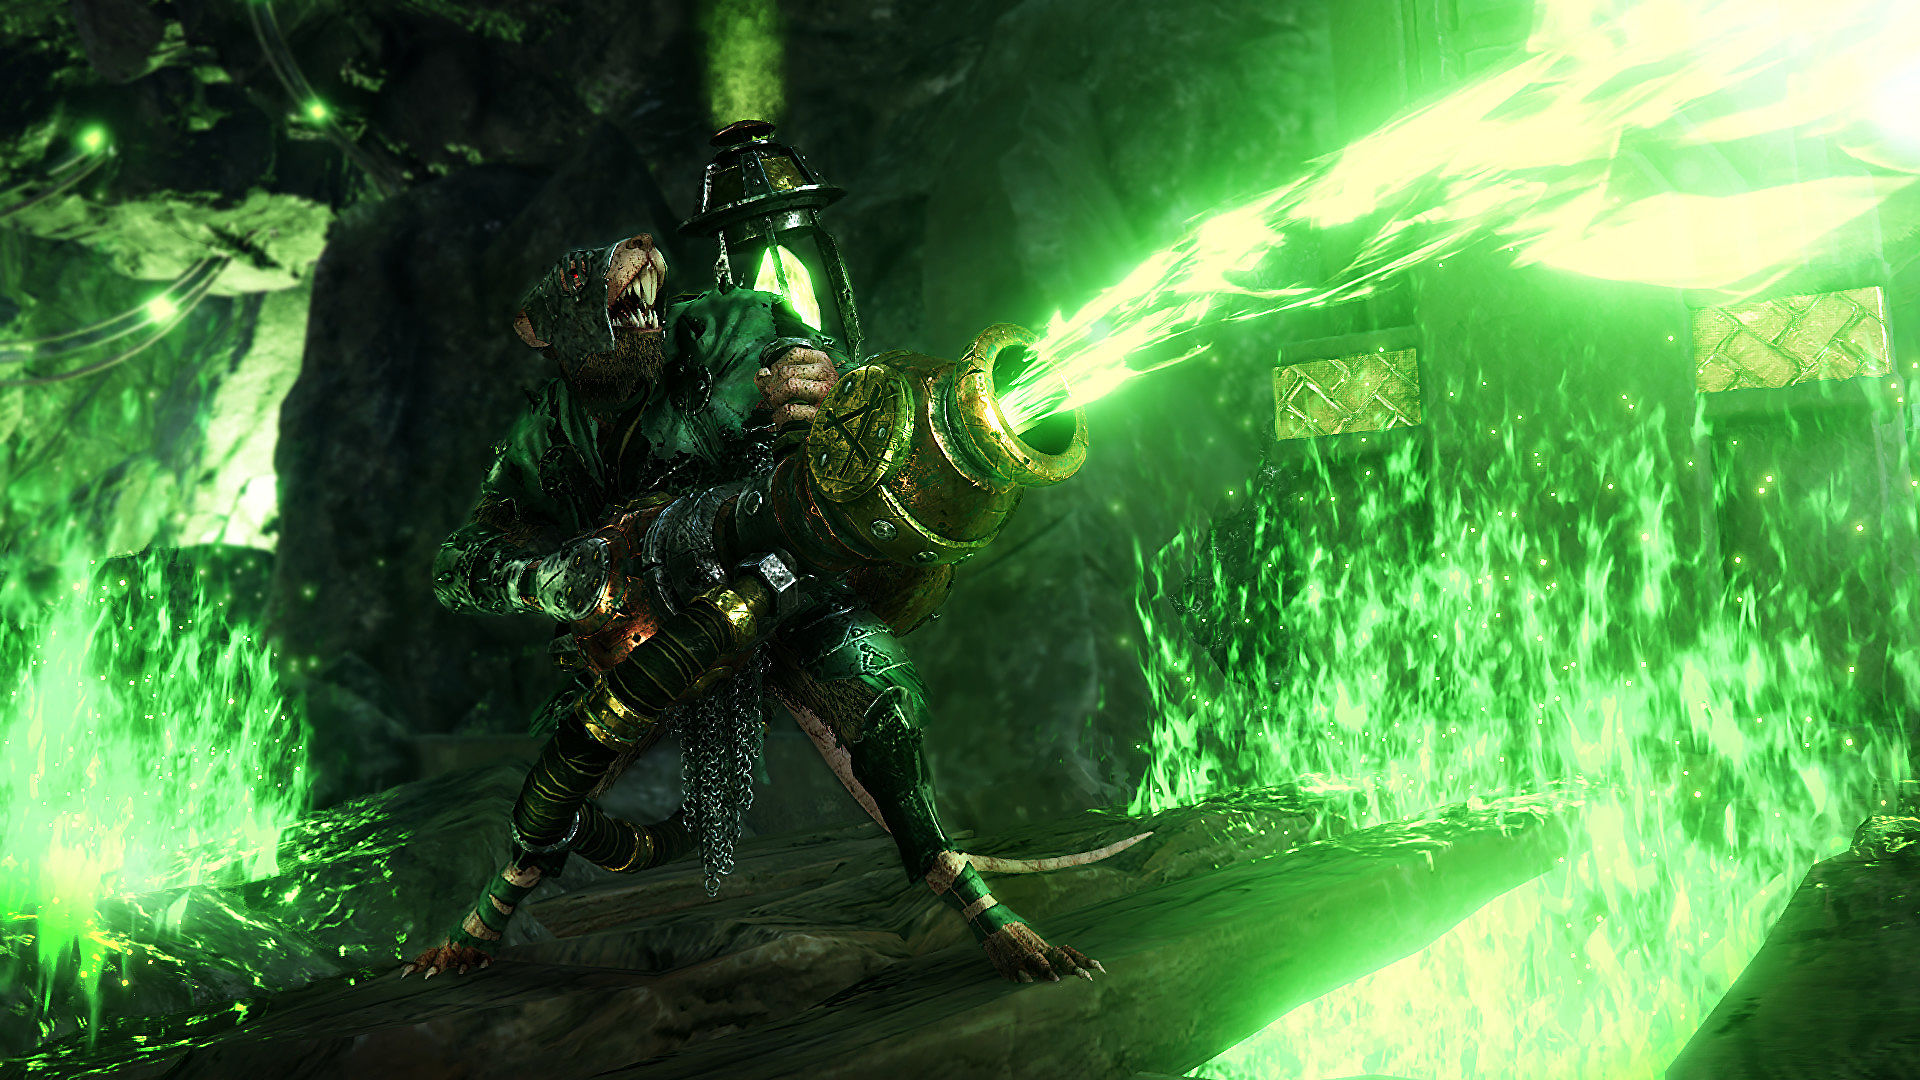 Vermintide 2's next free update adds a roguelike mode